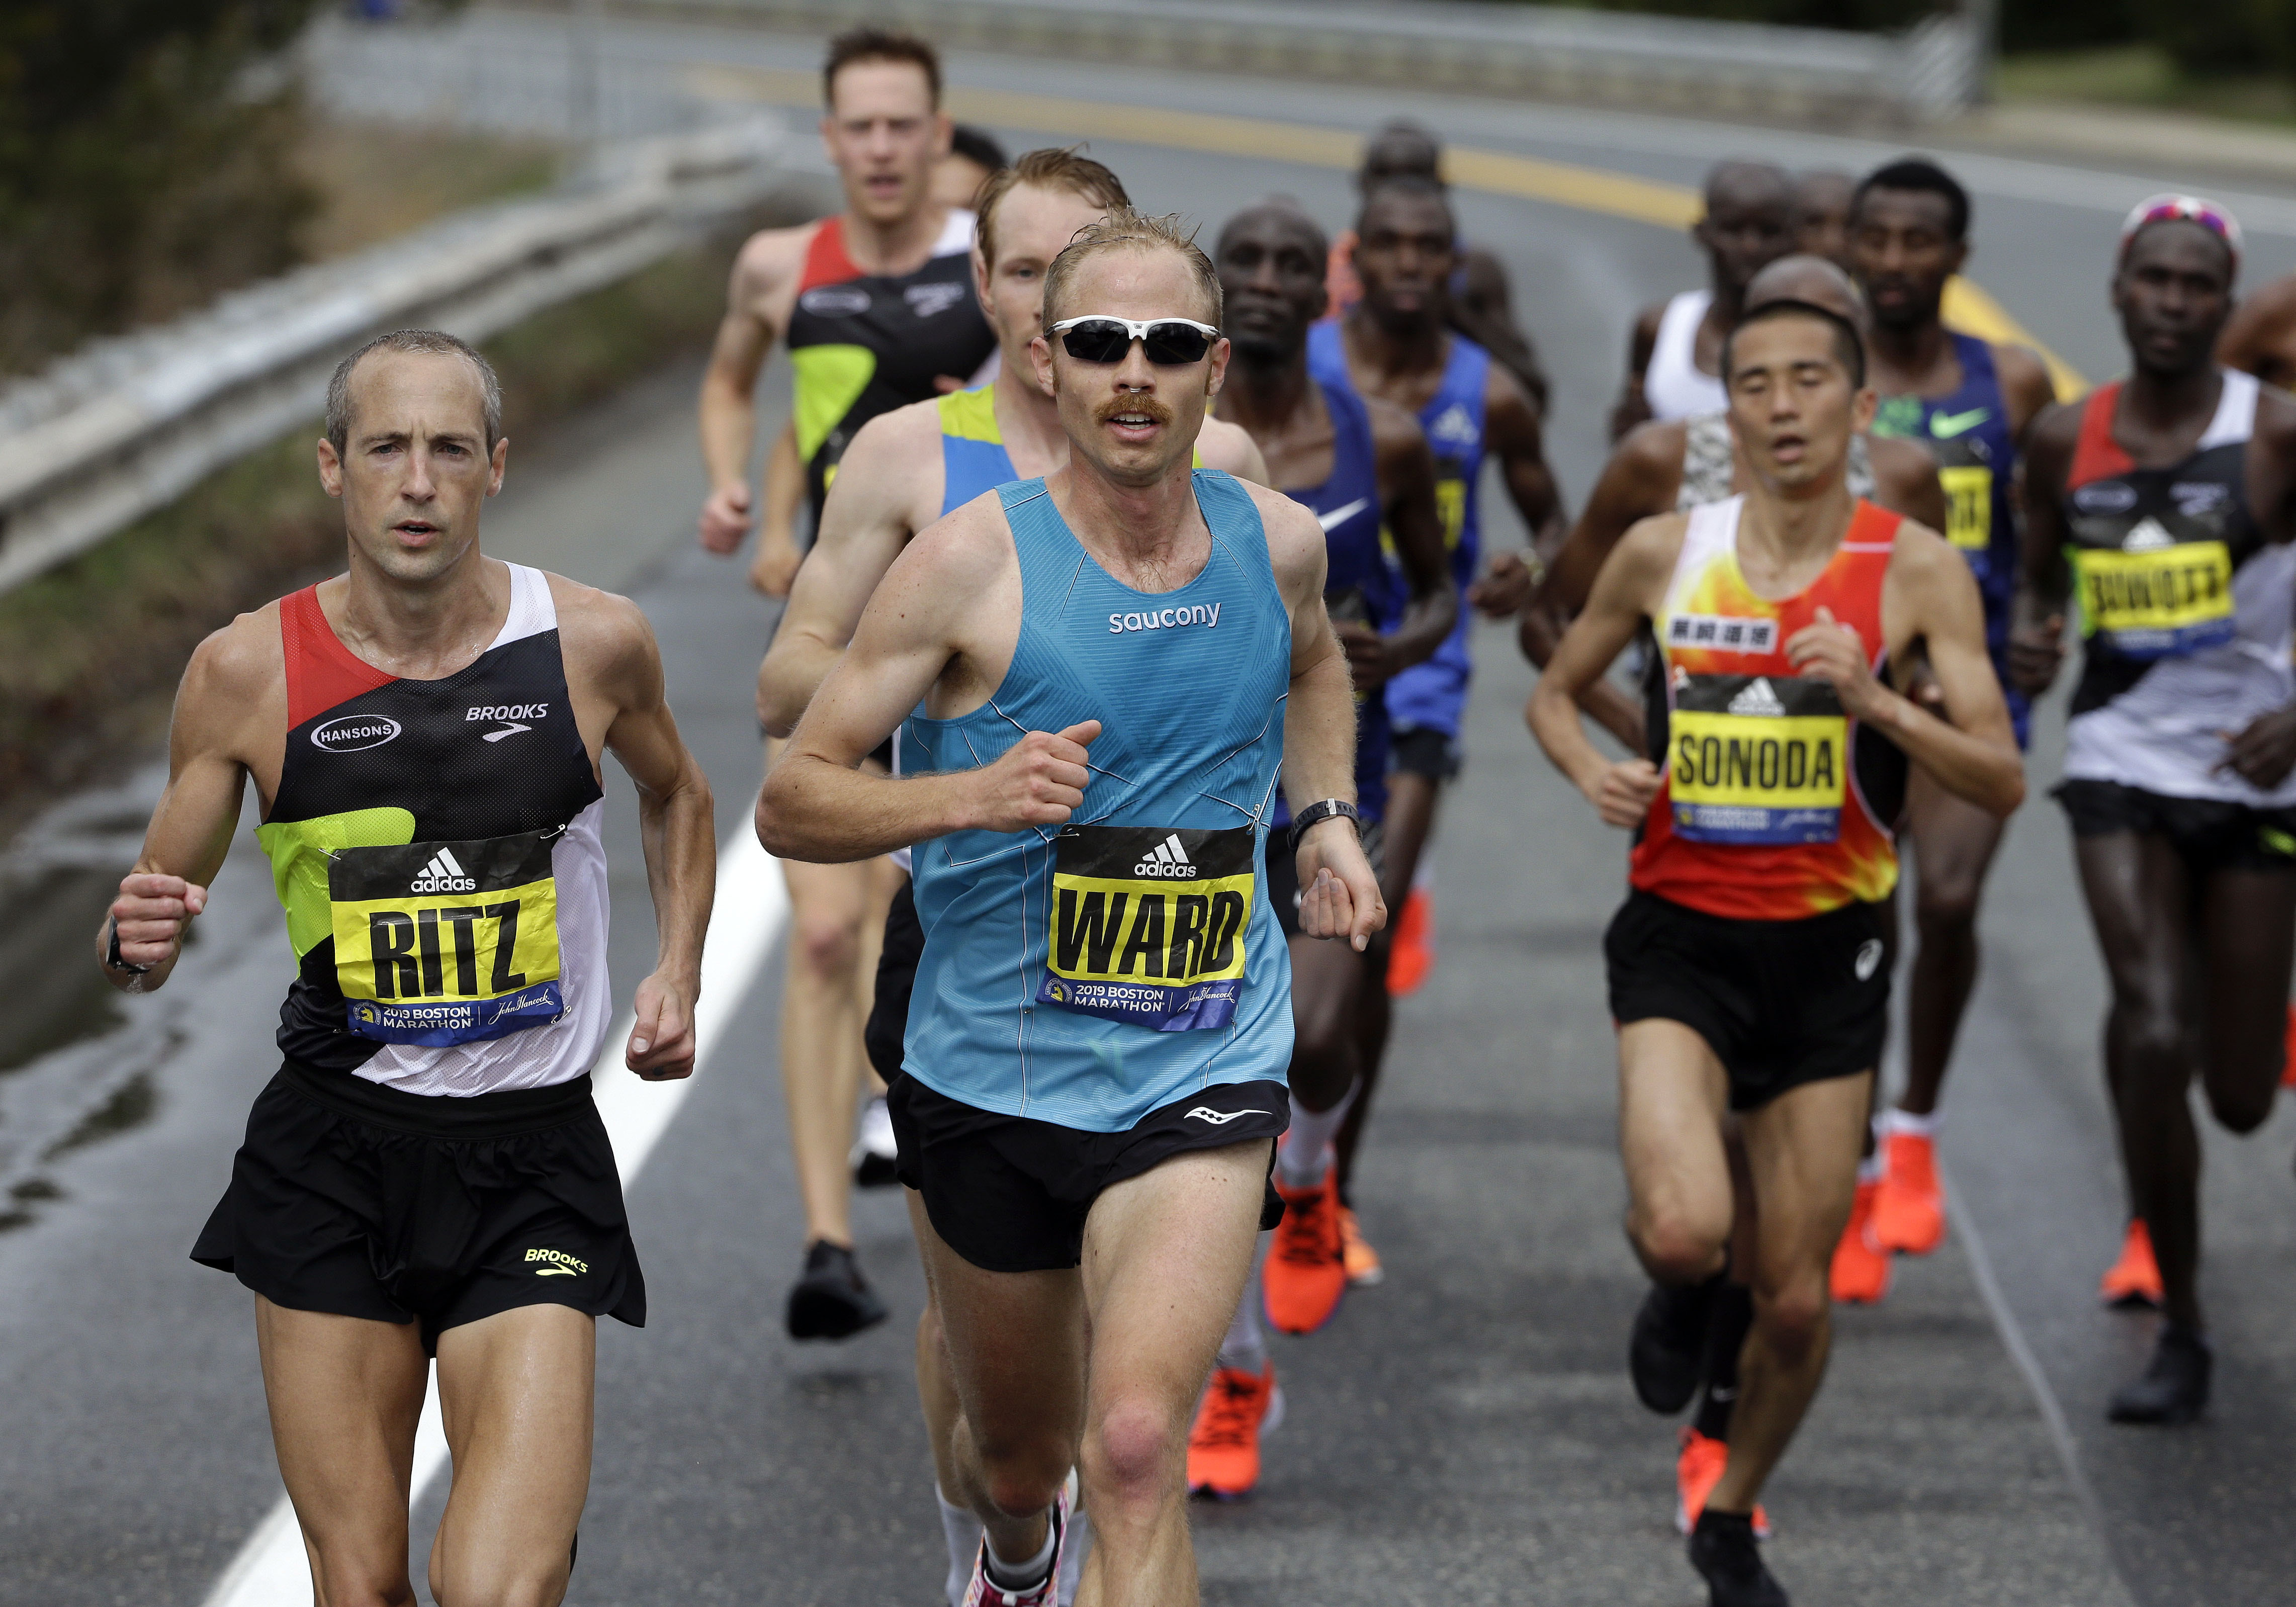 Jared Ward, center, of Mapleton, Utah, leads the pack in front of Dathan Ritzenhein, left, of Belmont, Mich., and Hayato Sonoda, right, of Japan, as they run the course during he 123rd Boston Marathon on Monday, April 15, 2019, in Natick, Mass. (AP Photo/Steven Senne)